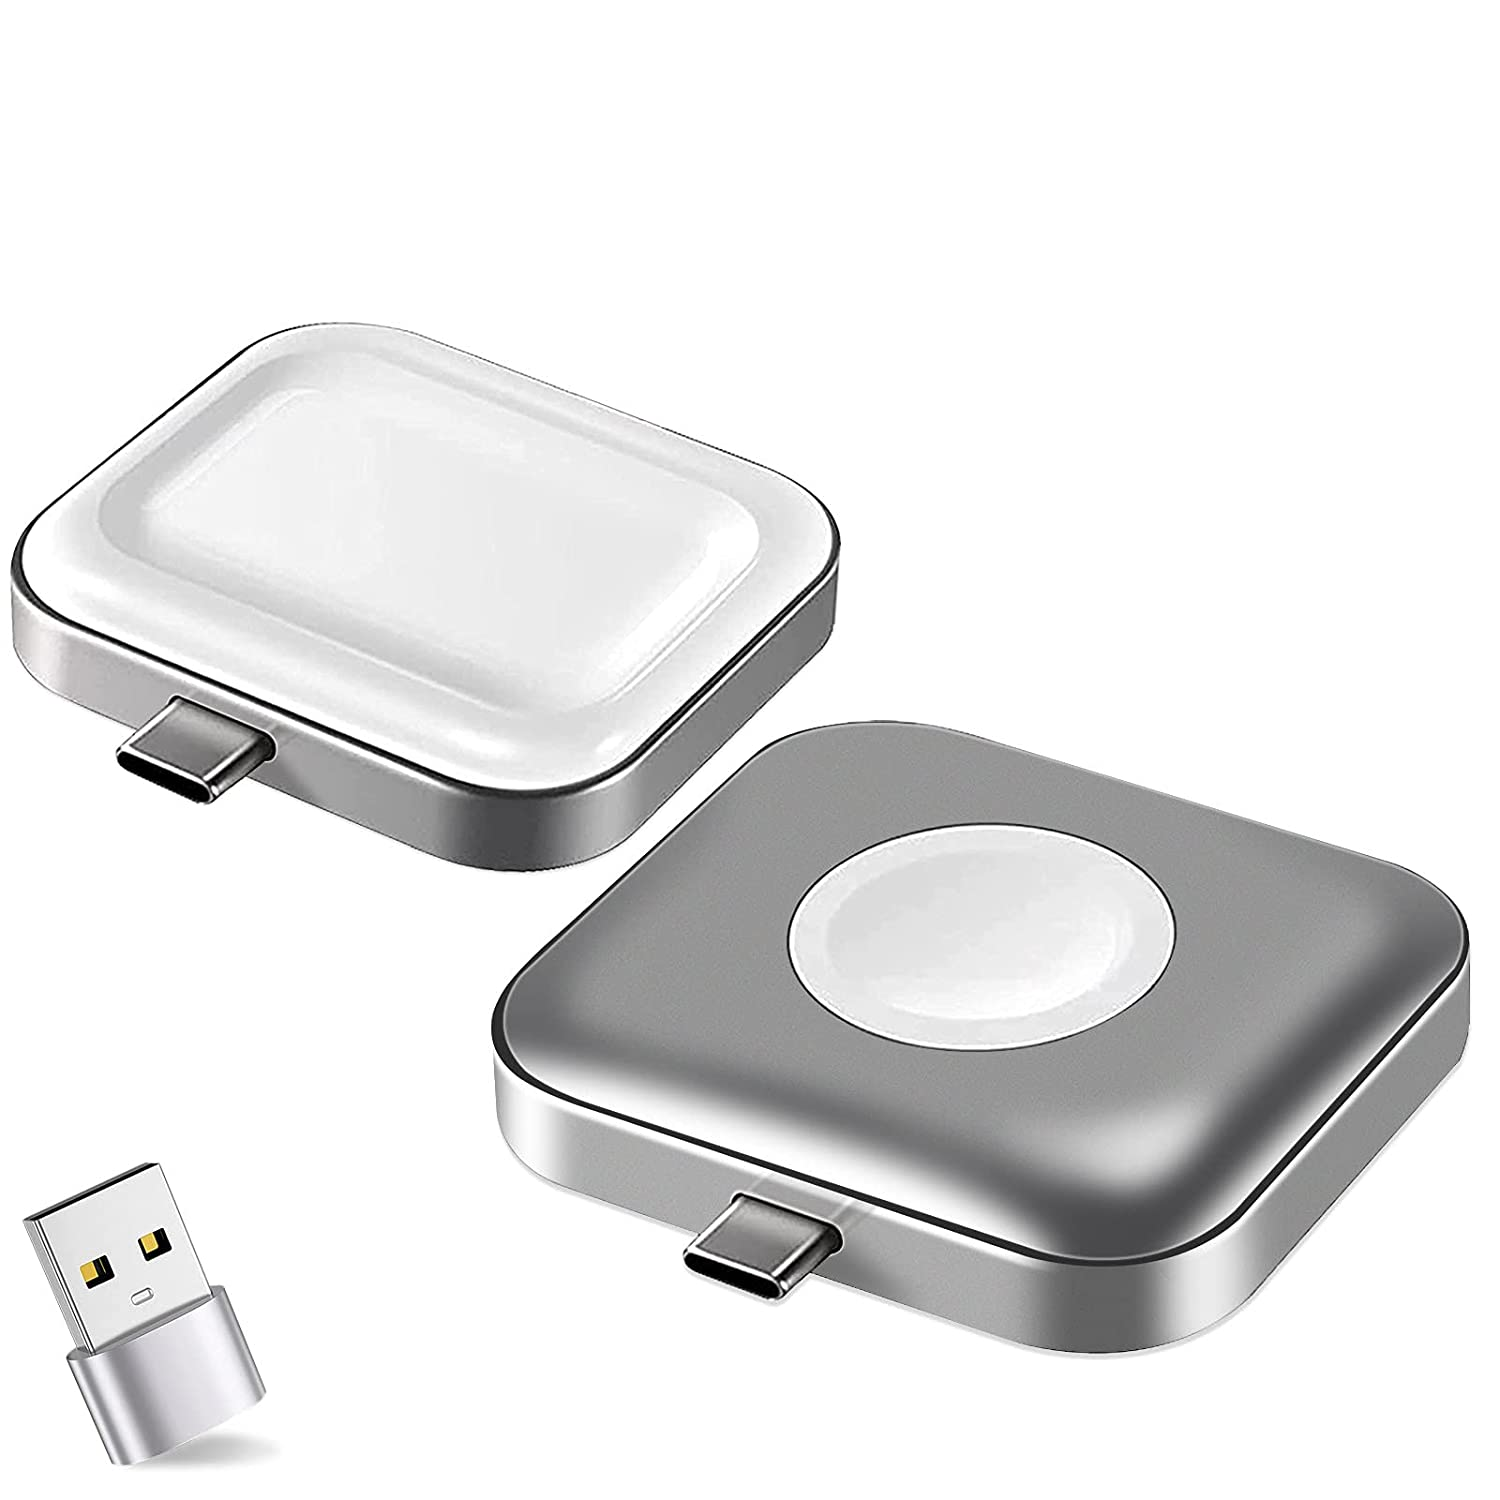 Compatible for Apple Watch Charger Airpods Charger,2 in 1 Portable Wireless USB-C Charger Travel Cordless Magnetic Charging Station Compatible with iWatch SE Series 6/5/4/3/2/1/Airpods 2/Pro (1 Pack)